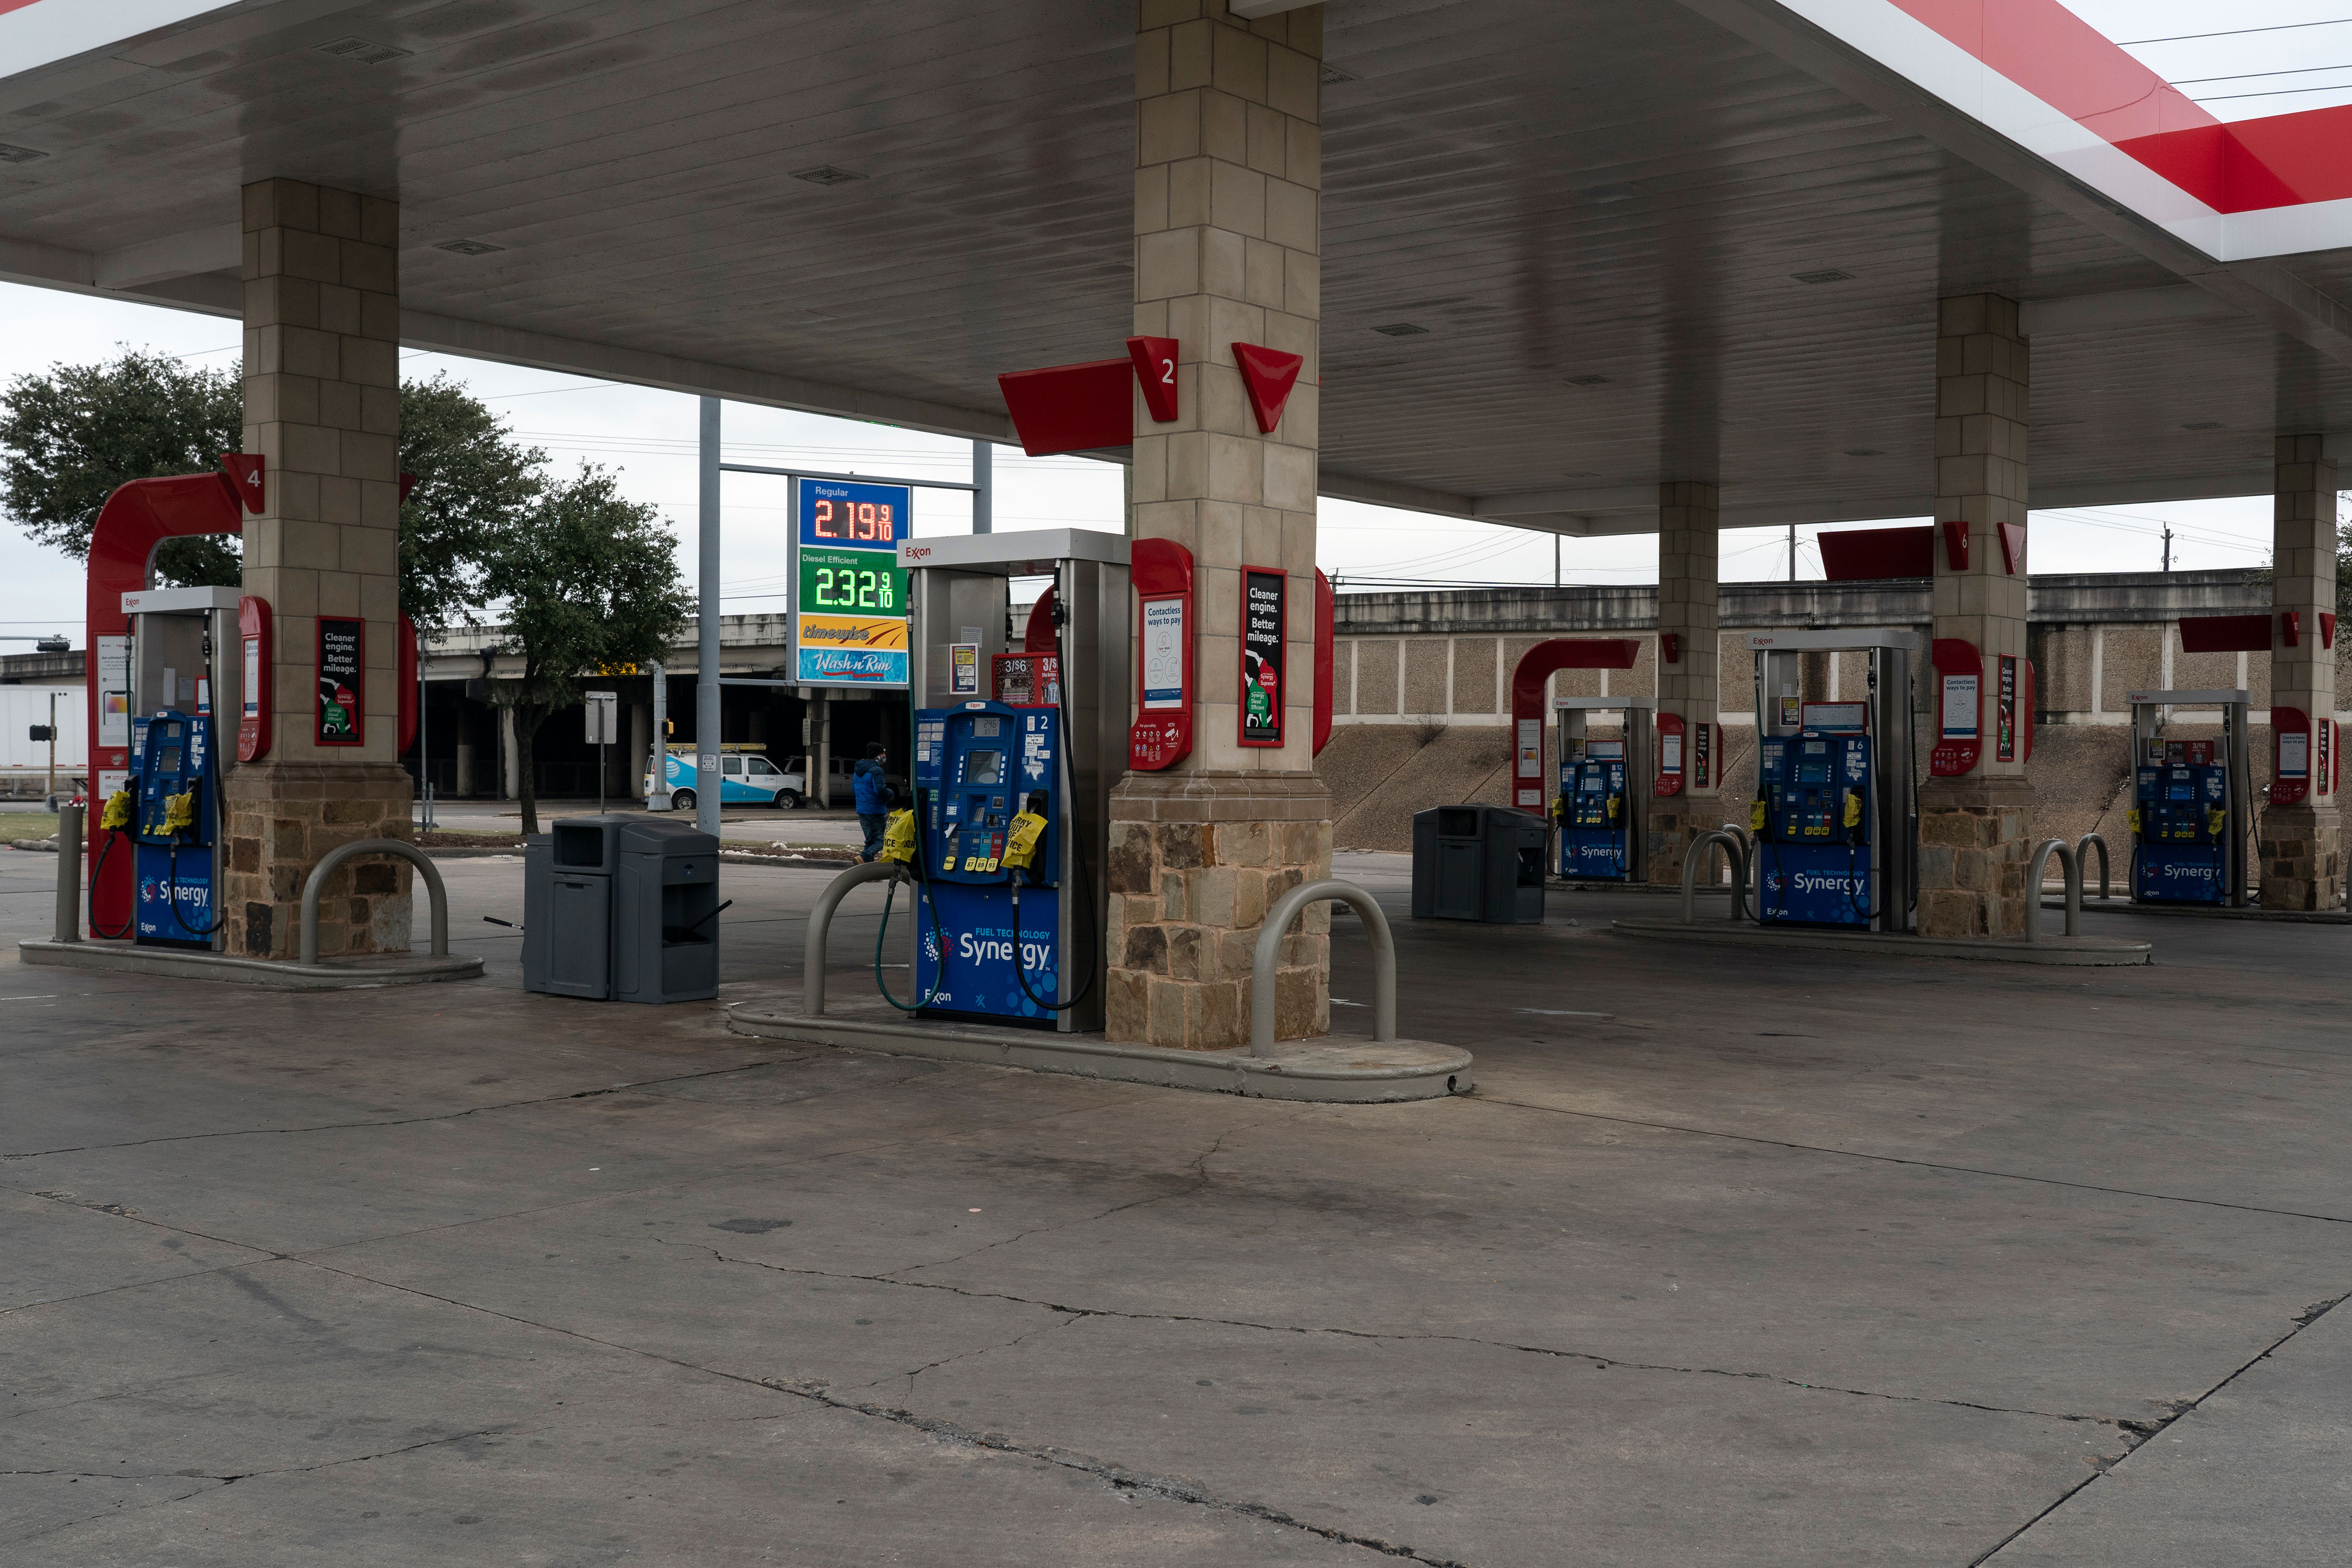 Pumps are out of service at an Exxon gas station in Houston due to high demand on February 18, after winter weather caused electricity blackouts.